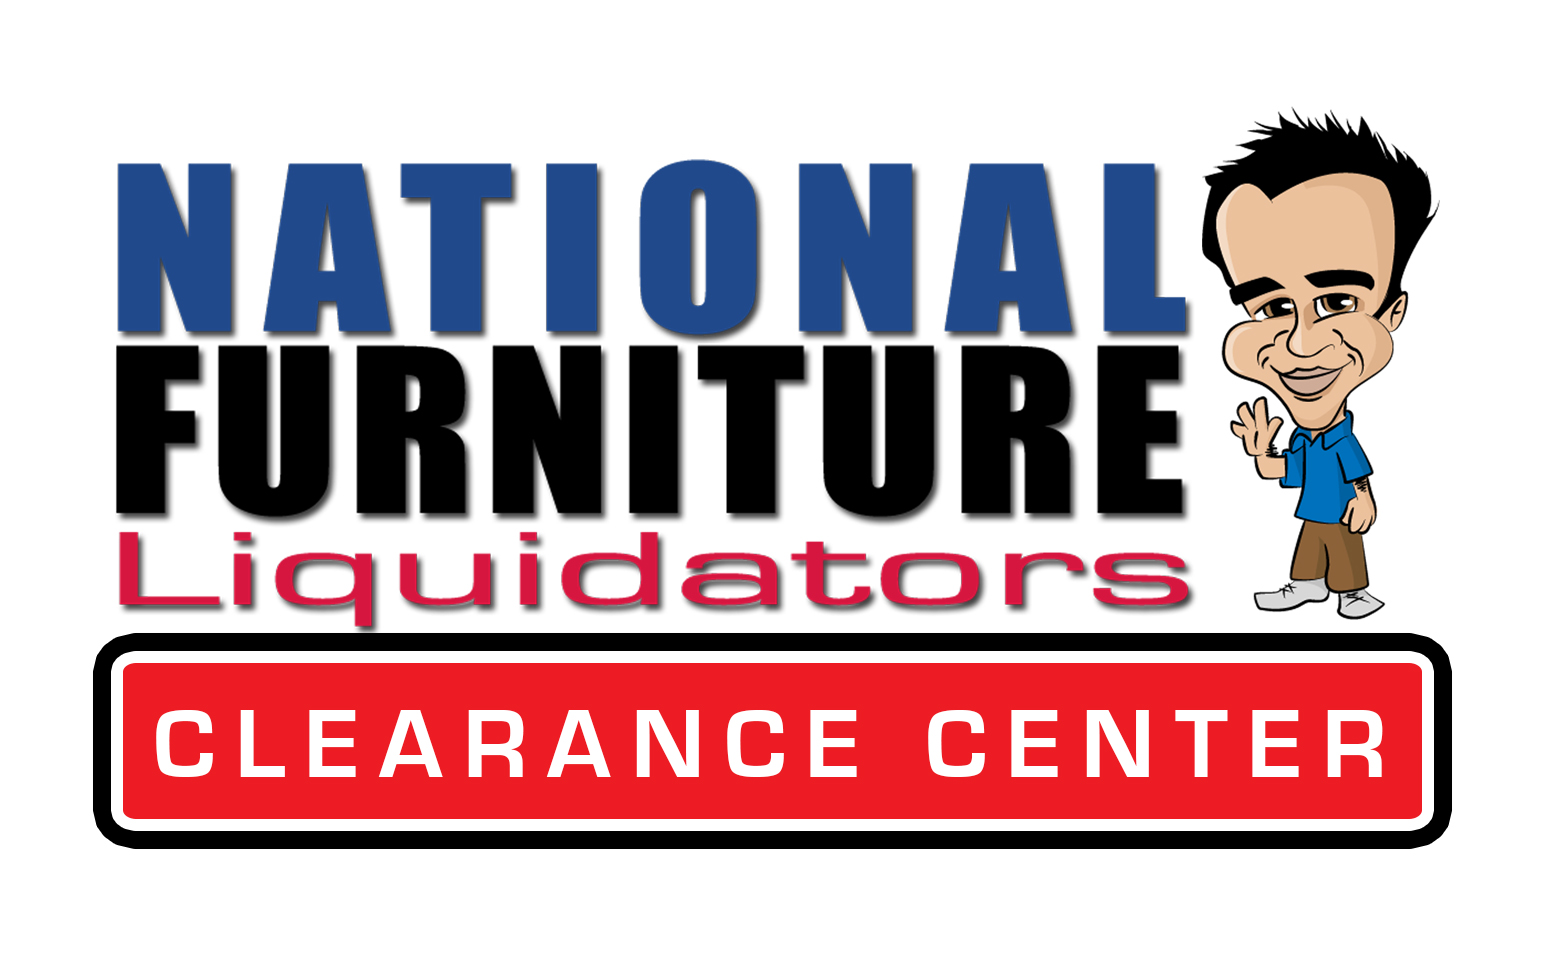 National Furniture Liquidator Clearance Center 1045 Hawkin Blvd El